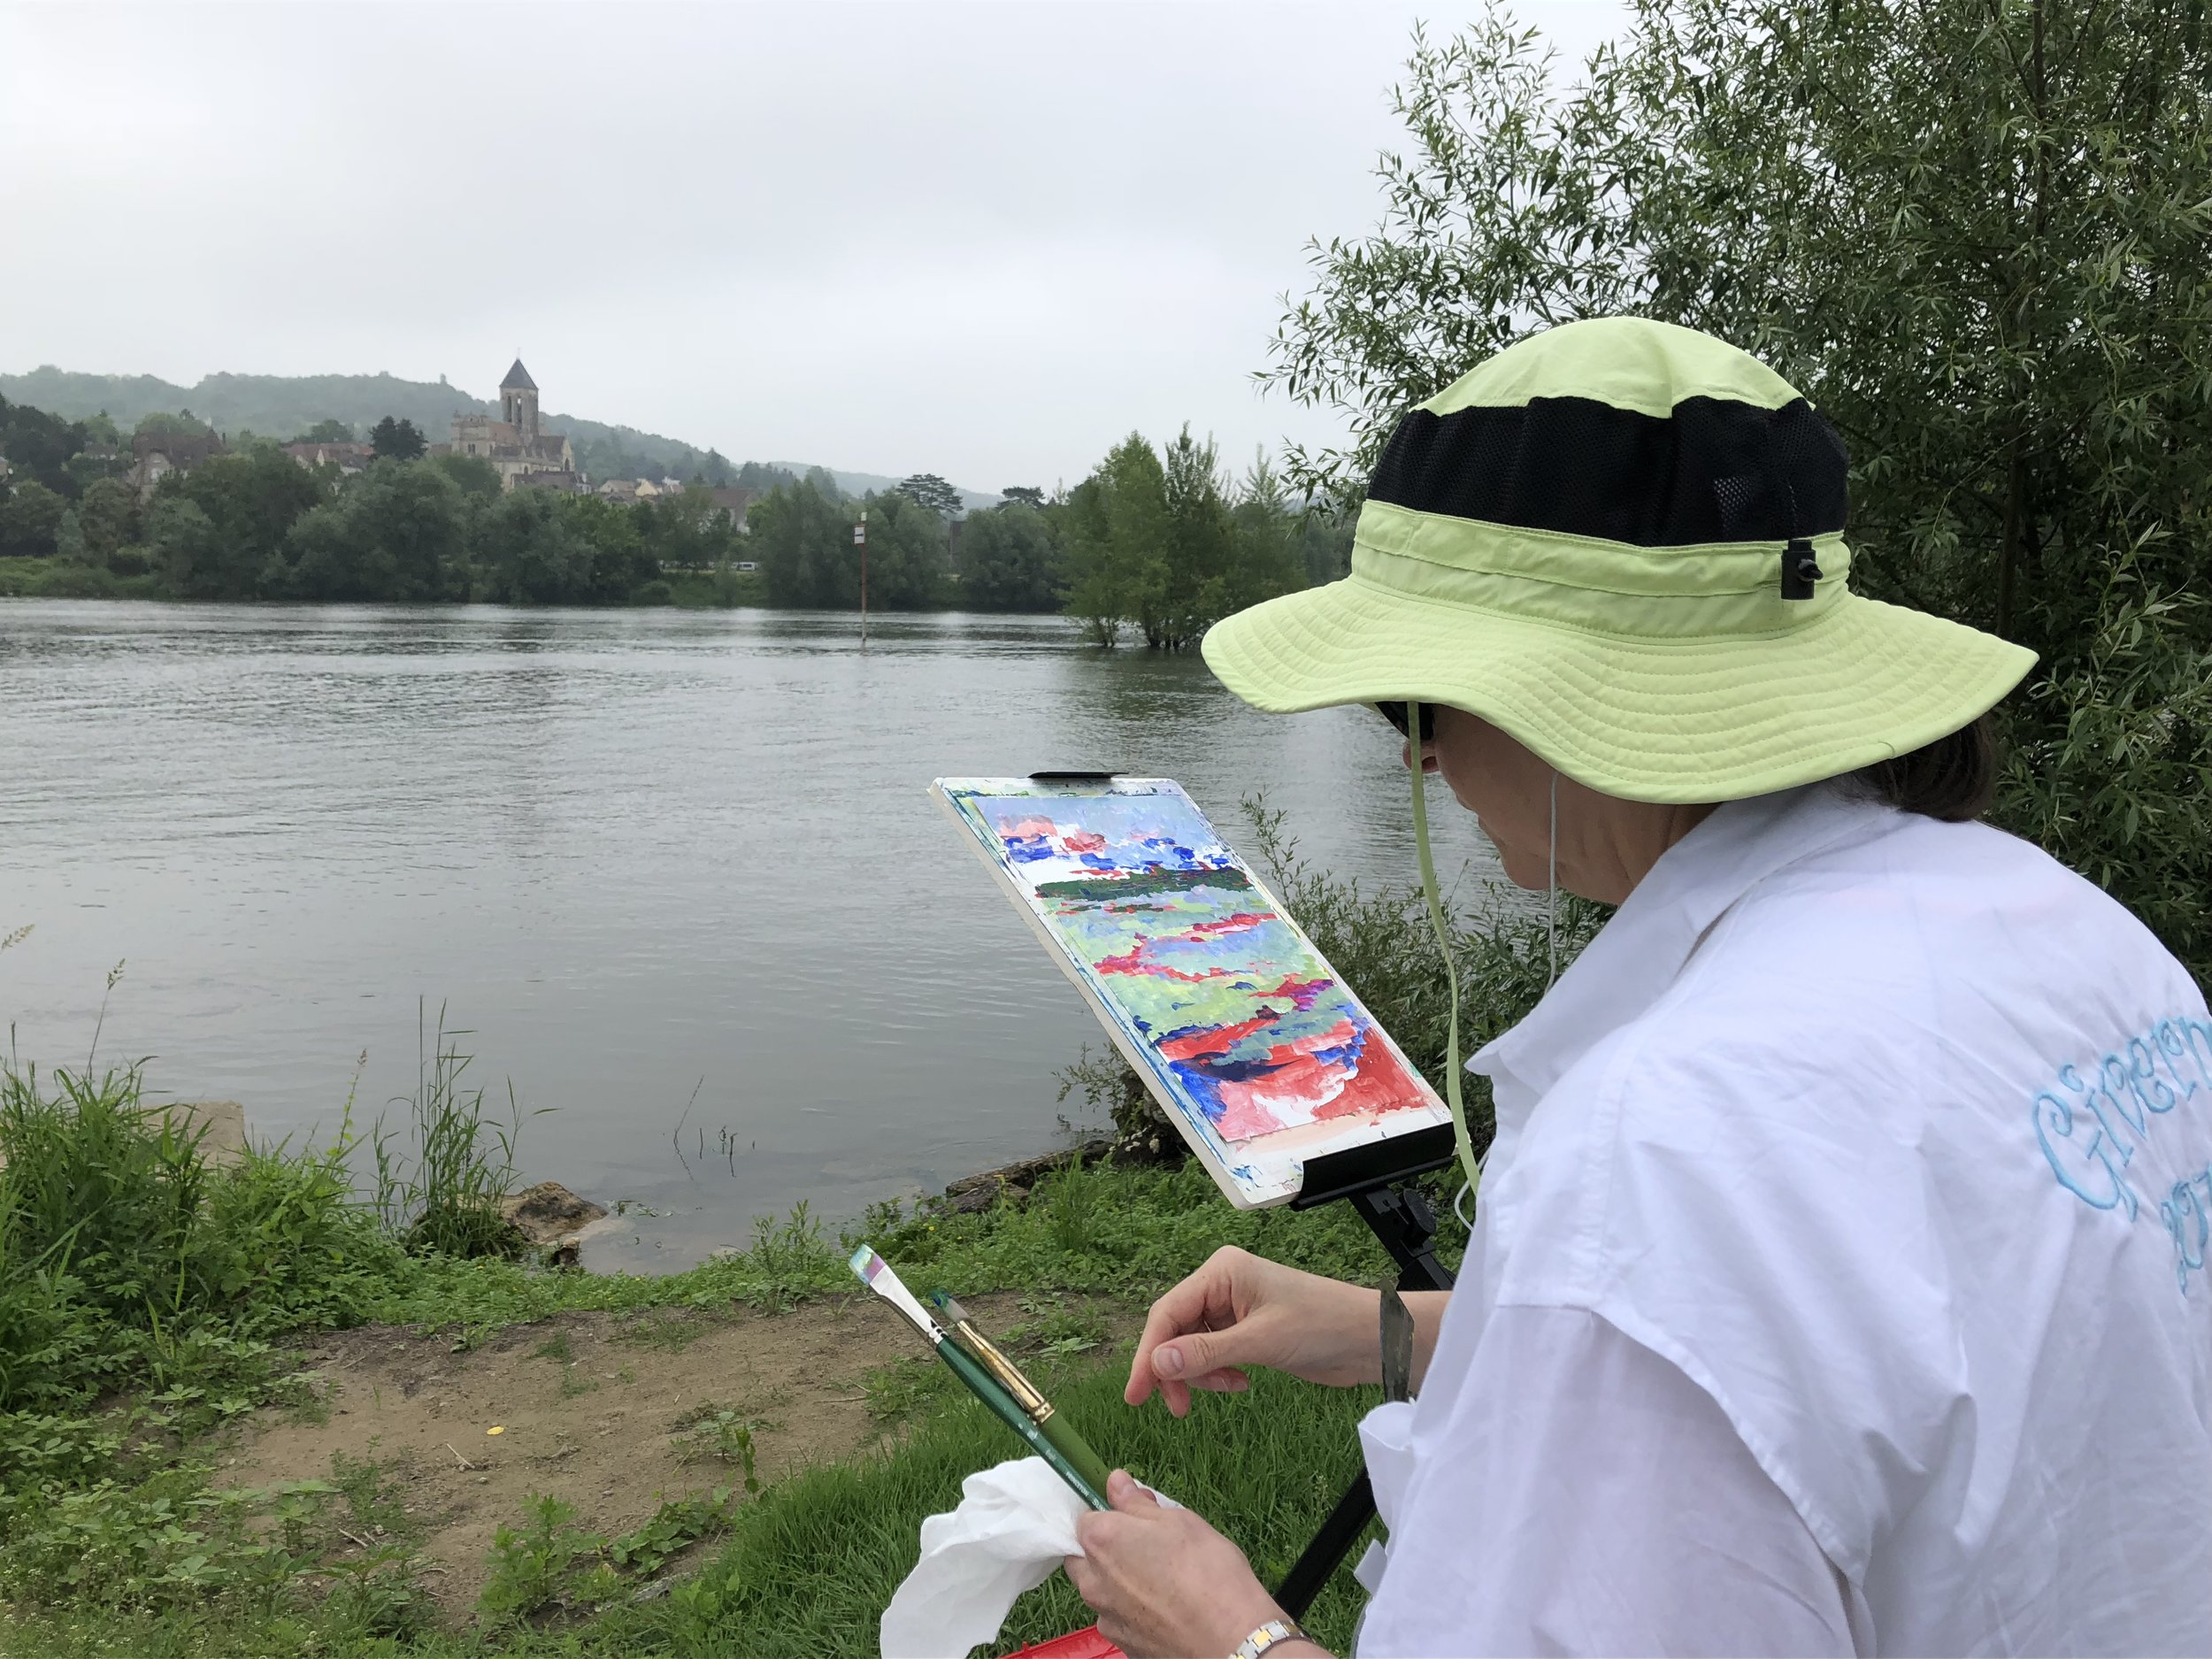 No shade in Lavacourt, looking across the Seine to Vethueil--the hat was vital! Note how I am nonchalantly sticking palette knives in shirt pockets in order to have them handy.